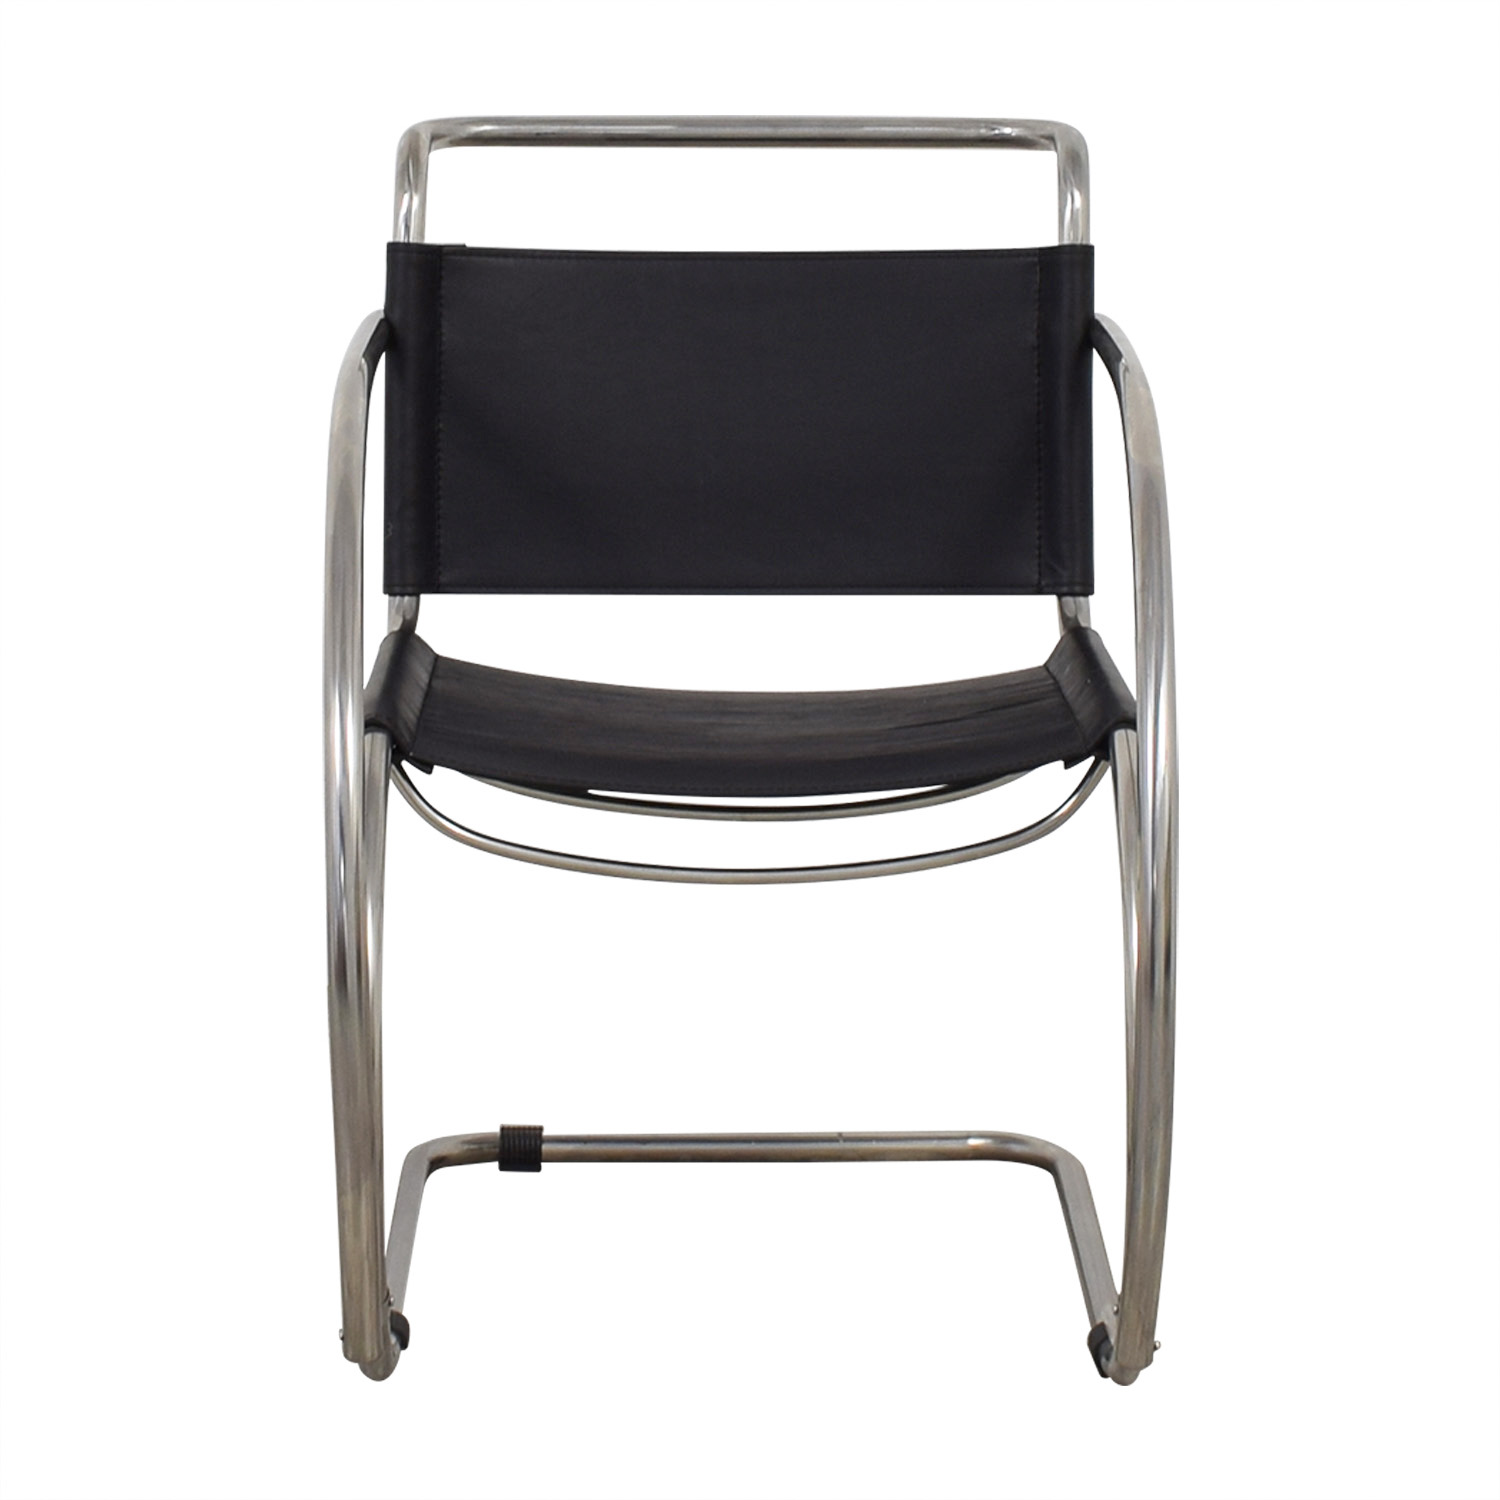 Awesome 88 Off Restoration Hardware Restoration Hardware Black And Chrome Accent Chair Chairs Cjindustries Chair Design For Home Cjindustriesco